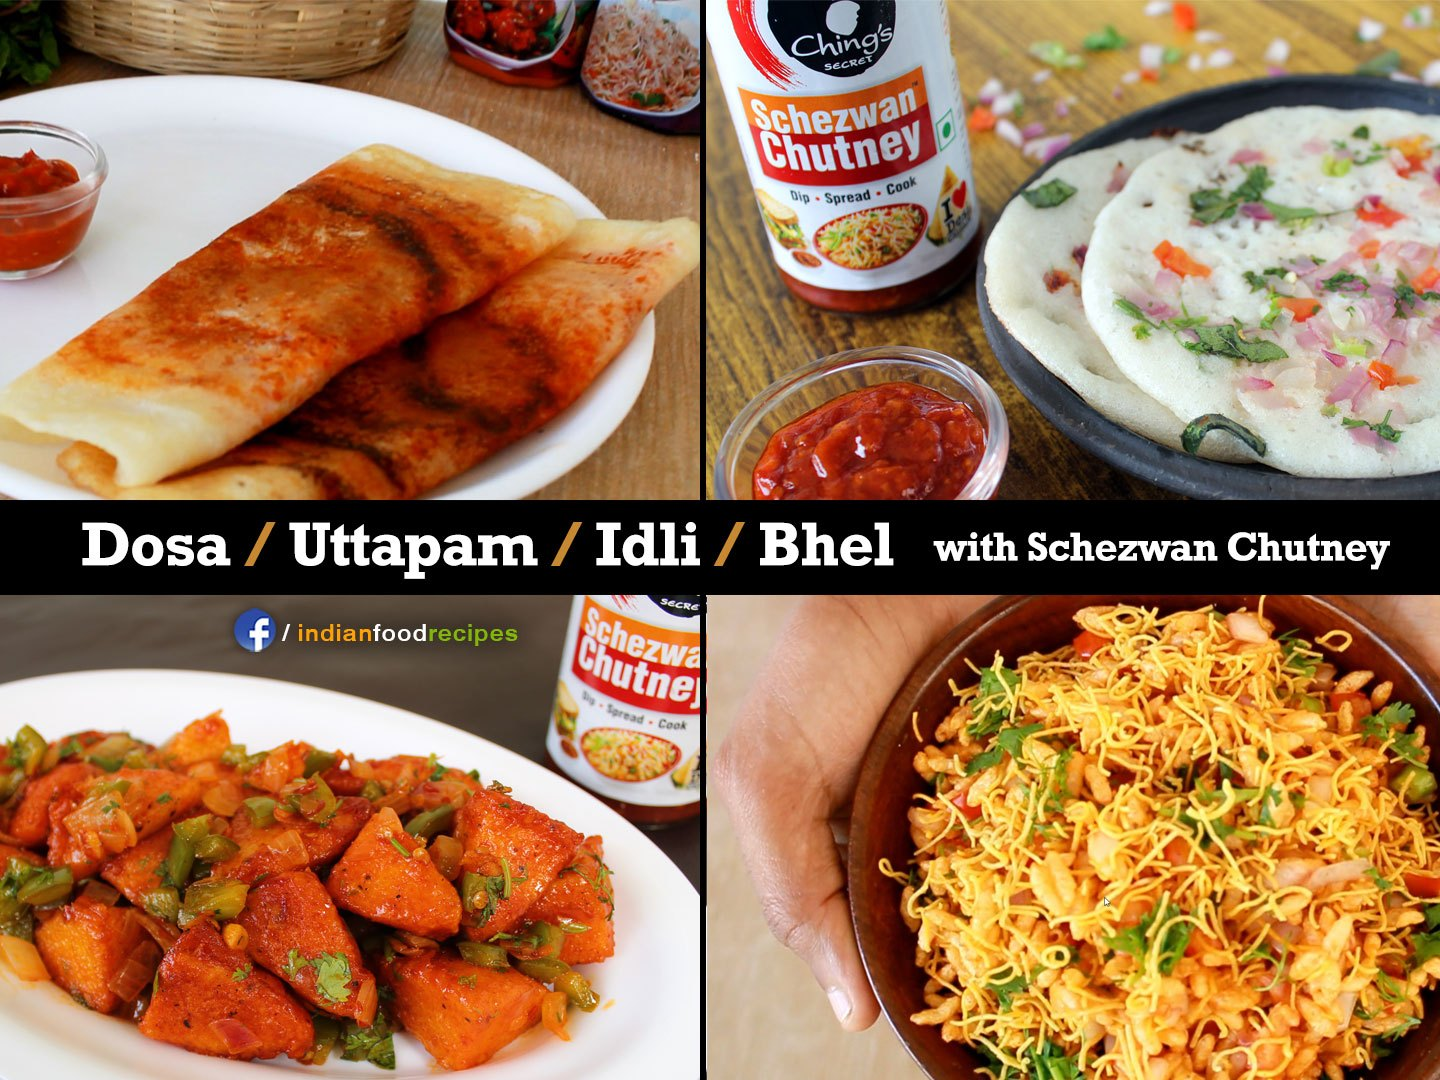 4 Ching's secret Schezwan Chutney recipes | Dosa | Uttapam | Bhel | Idli recipes